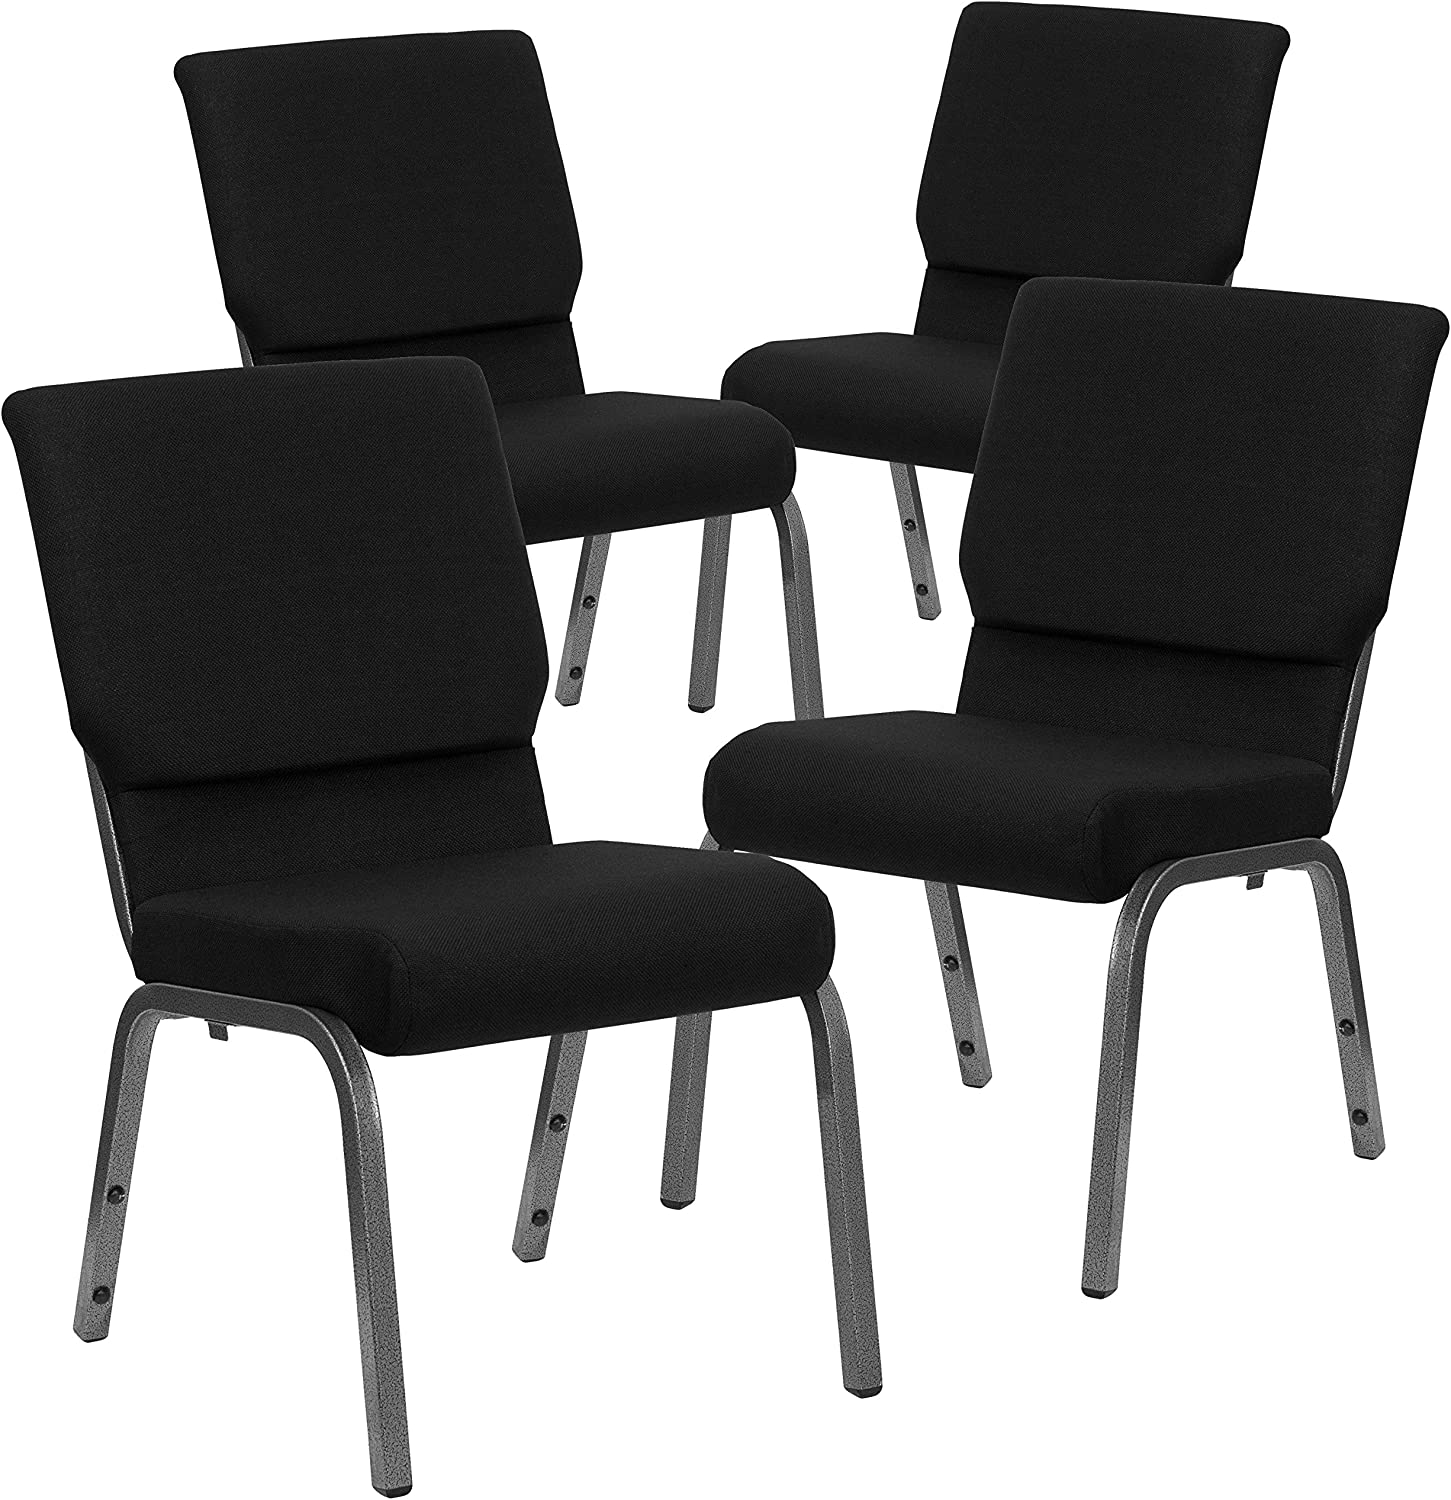 Silver Vein Frame Flash Furniture HERCULES Series 18.5W Stacking Church Chair in Black Fabric